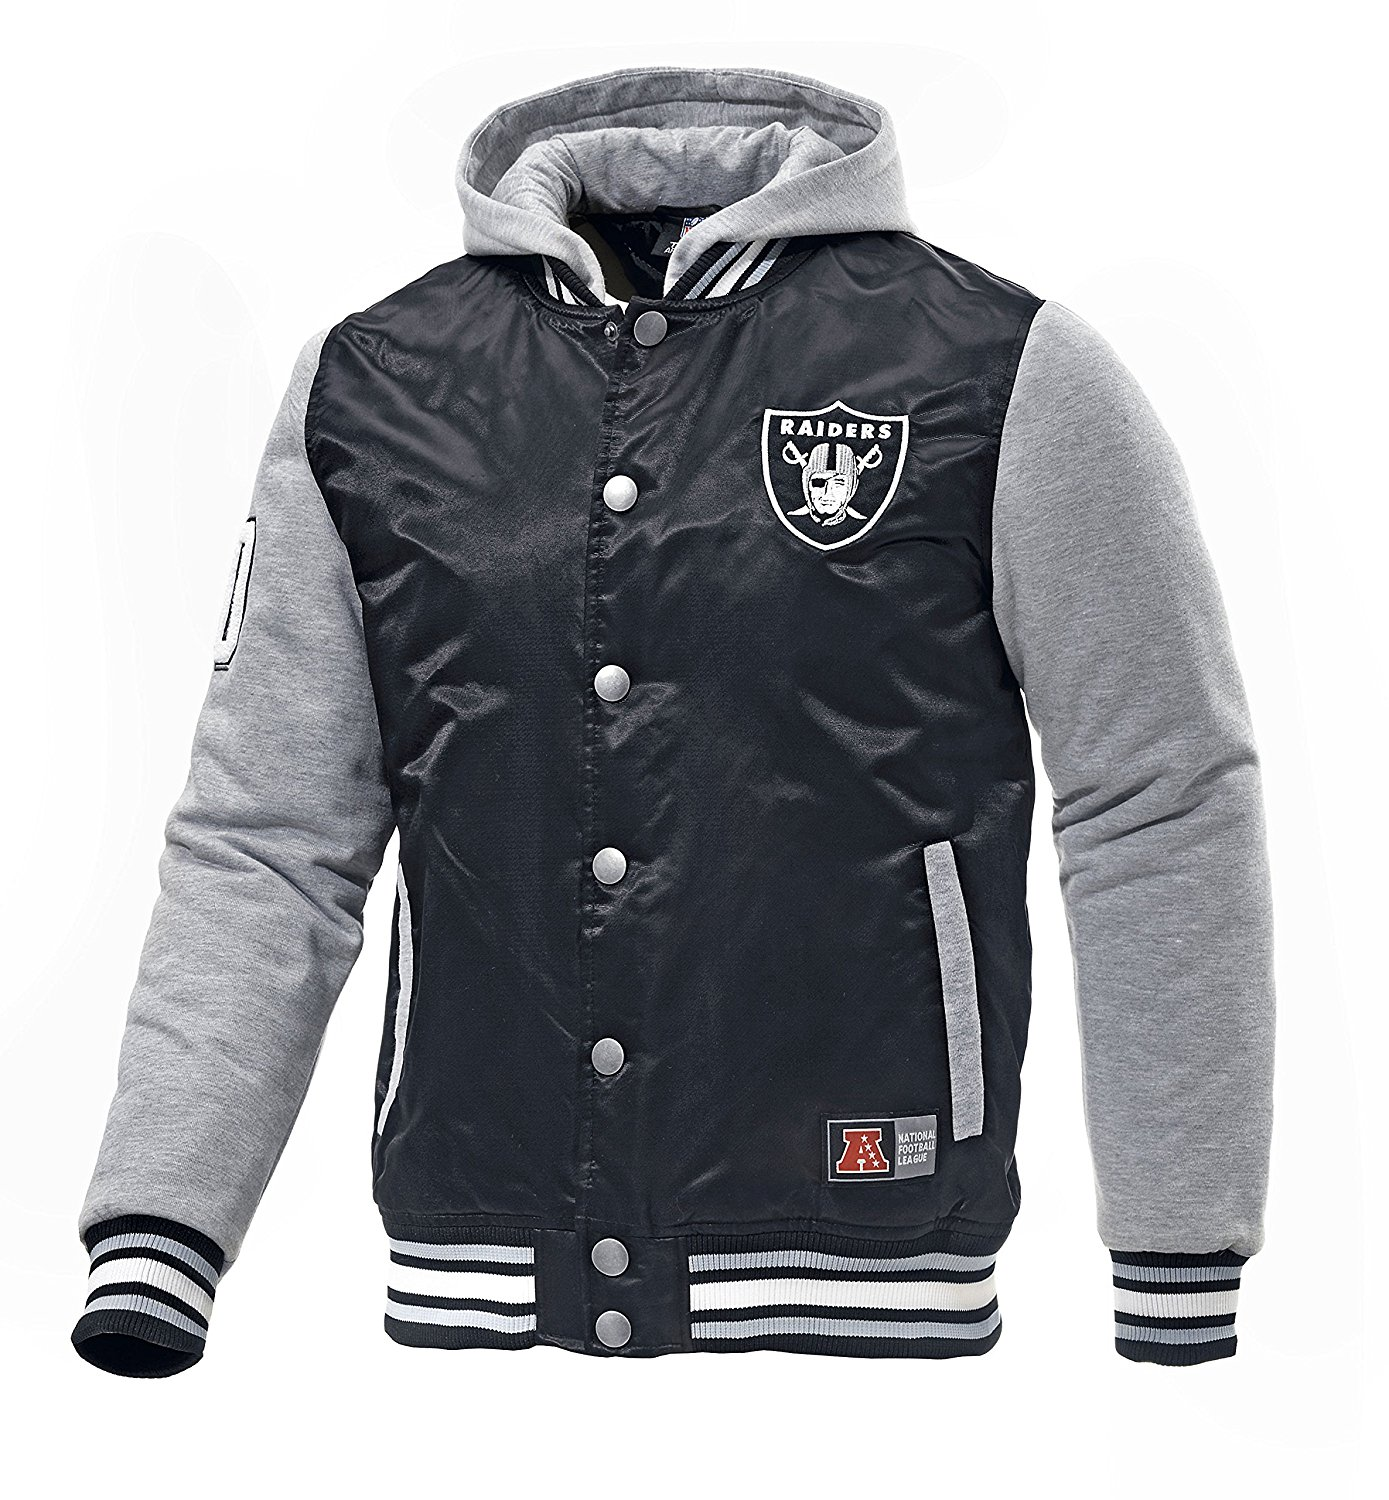 Raiders Starter Jacket | Raiders Letterman Jacket | Starter Jackets Ebay